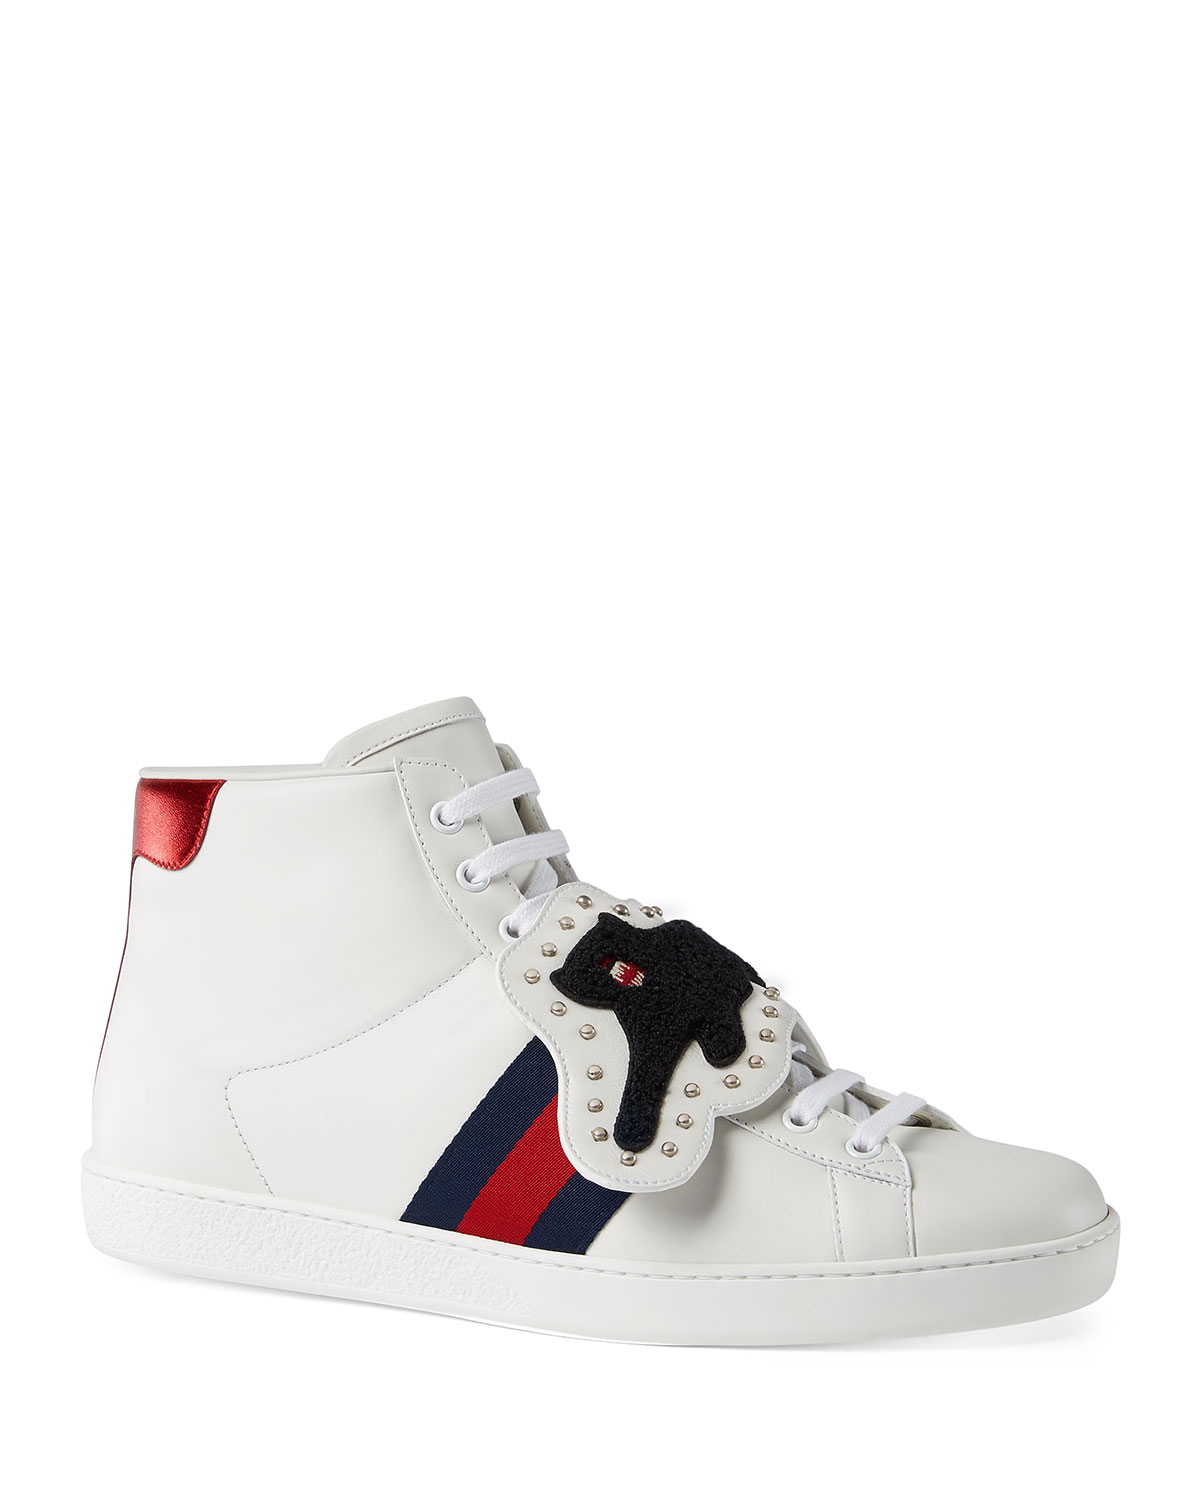 Gucci Ace Sneaker with Removable Patches  573d36929db26